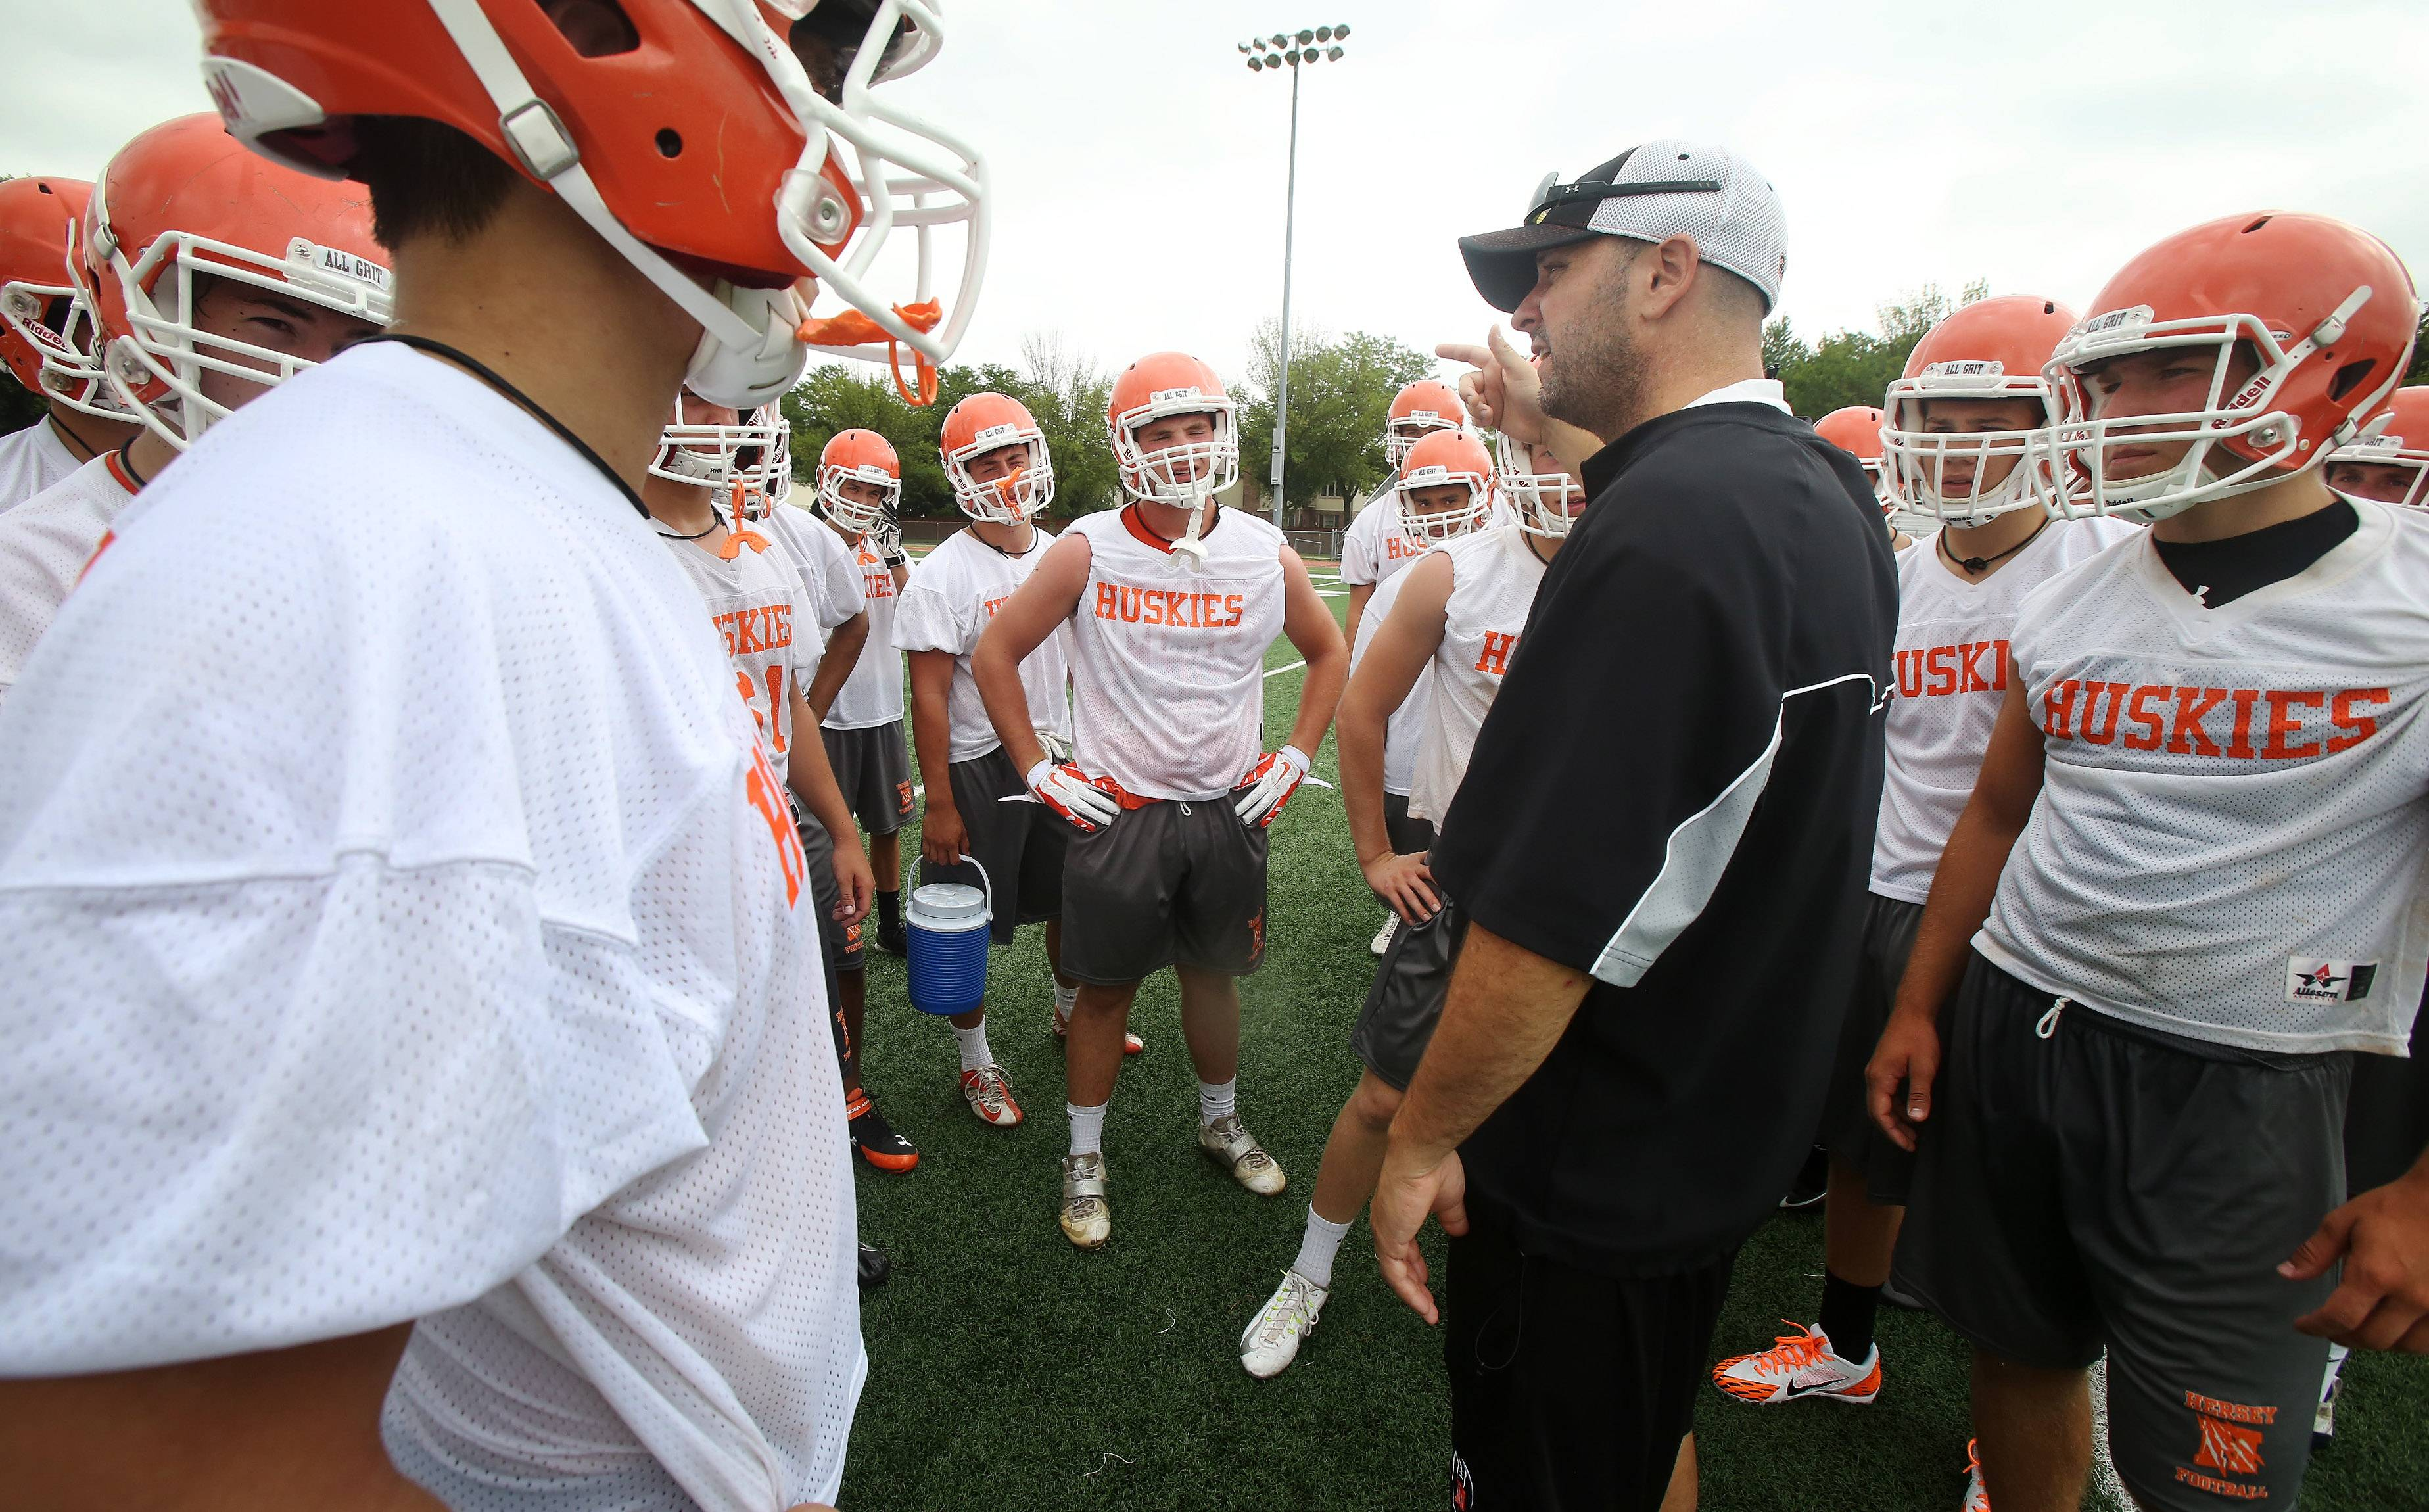 Football coach Joe Pardun talks to his team during drills on the first day of football practice at Hersey High School on Monday. Pardun is starting his first year leading the team after several years as an assistant.